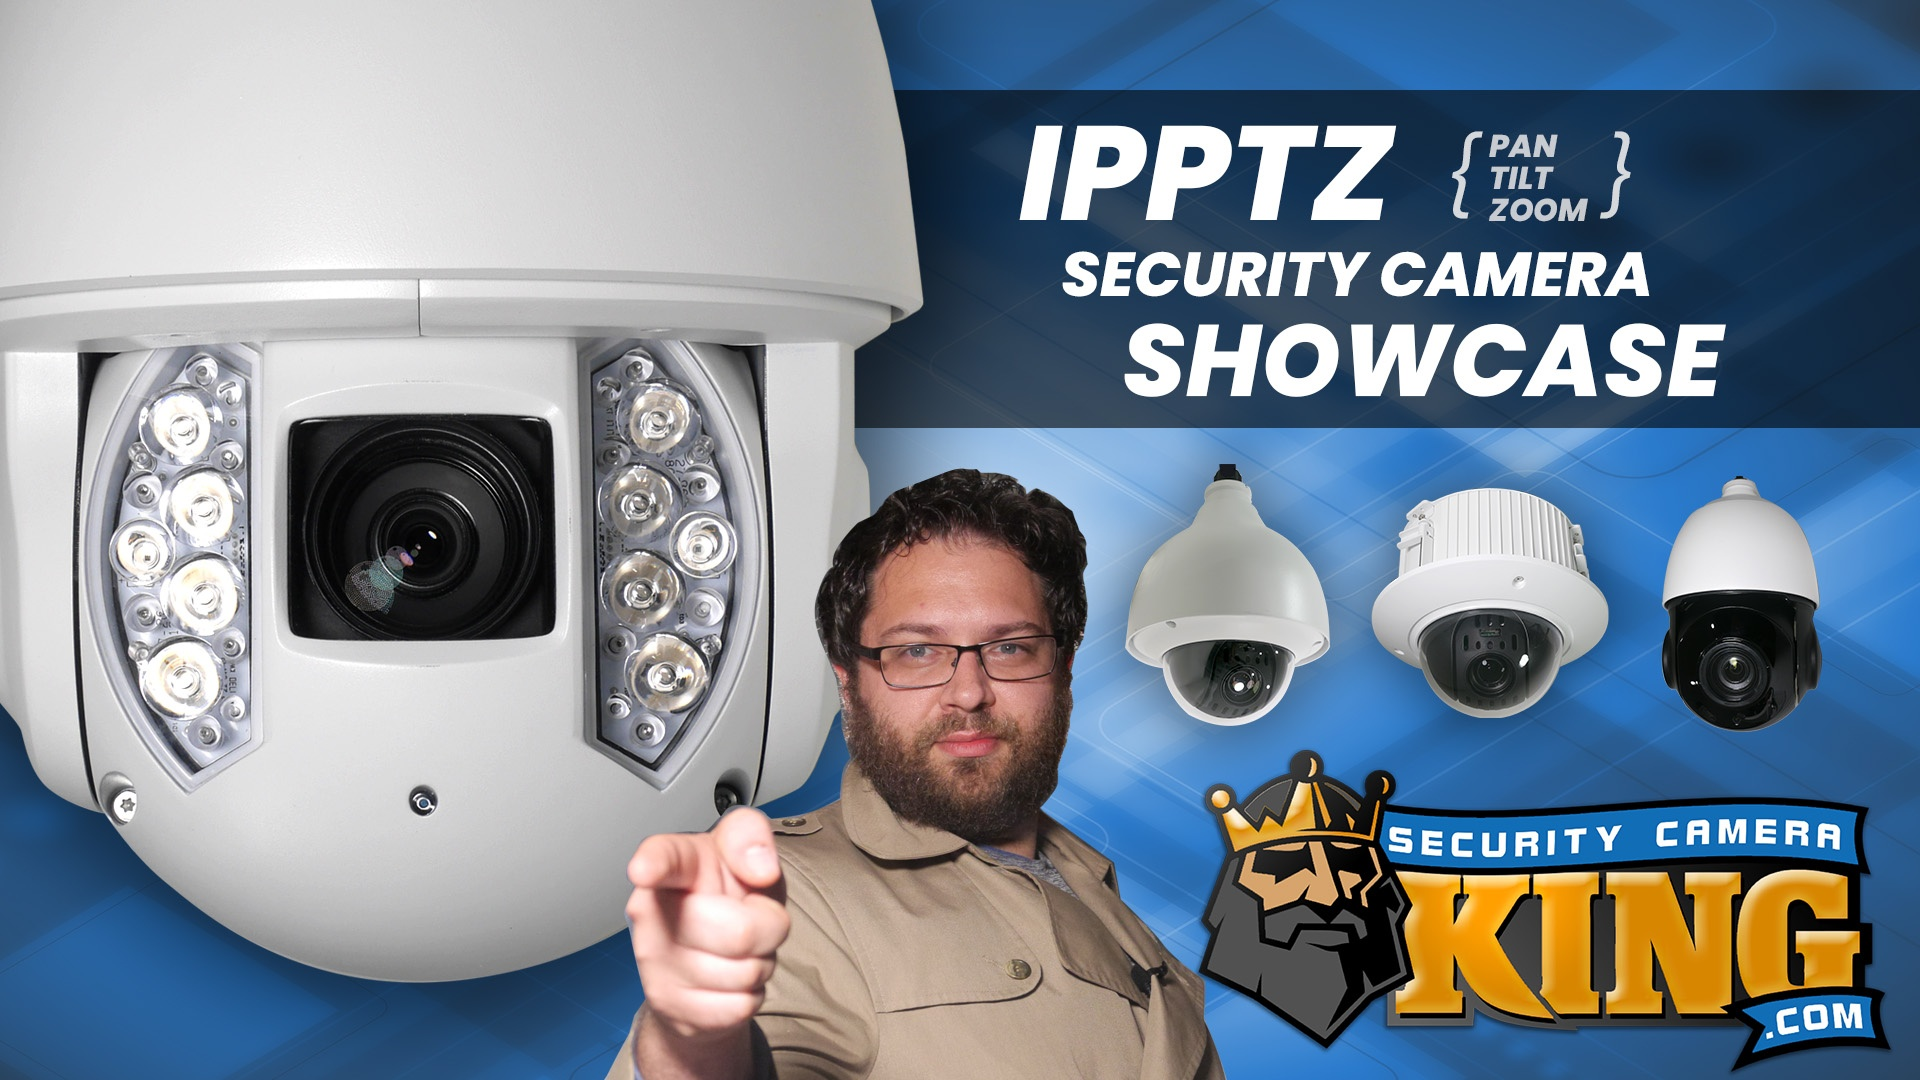 IP PTZ Security Cameras - All There is to Know